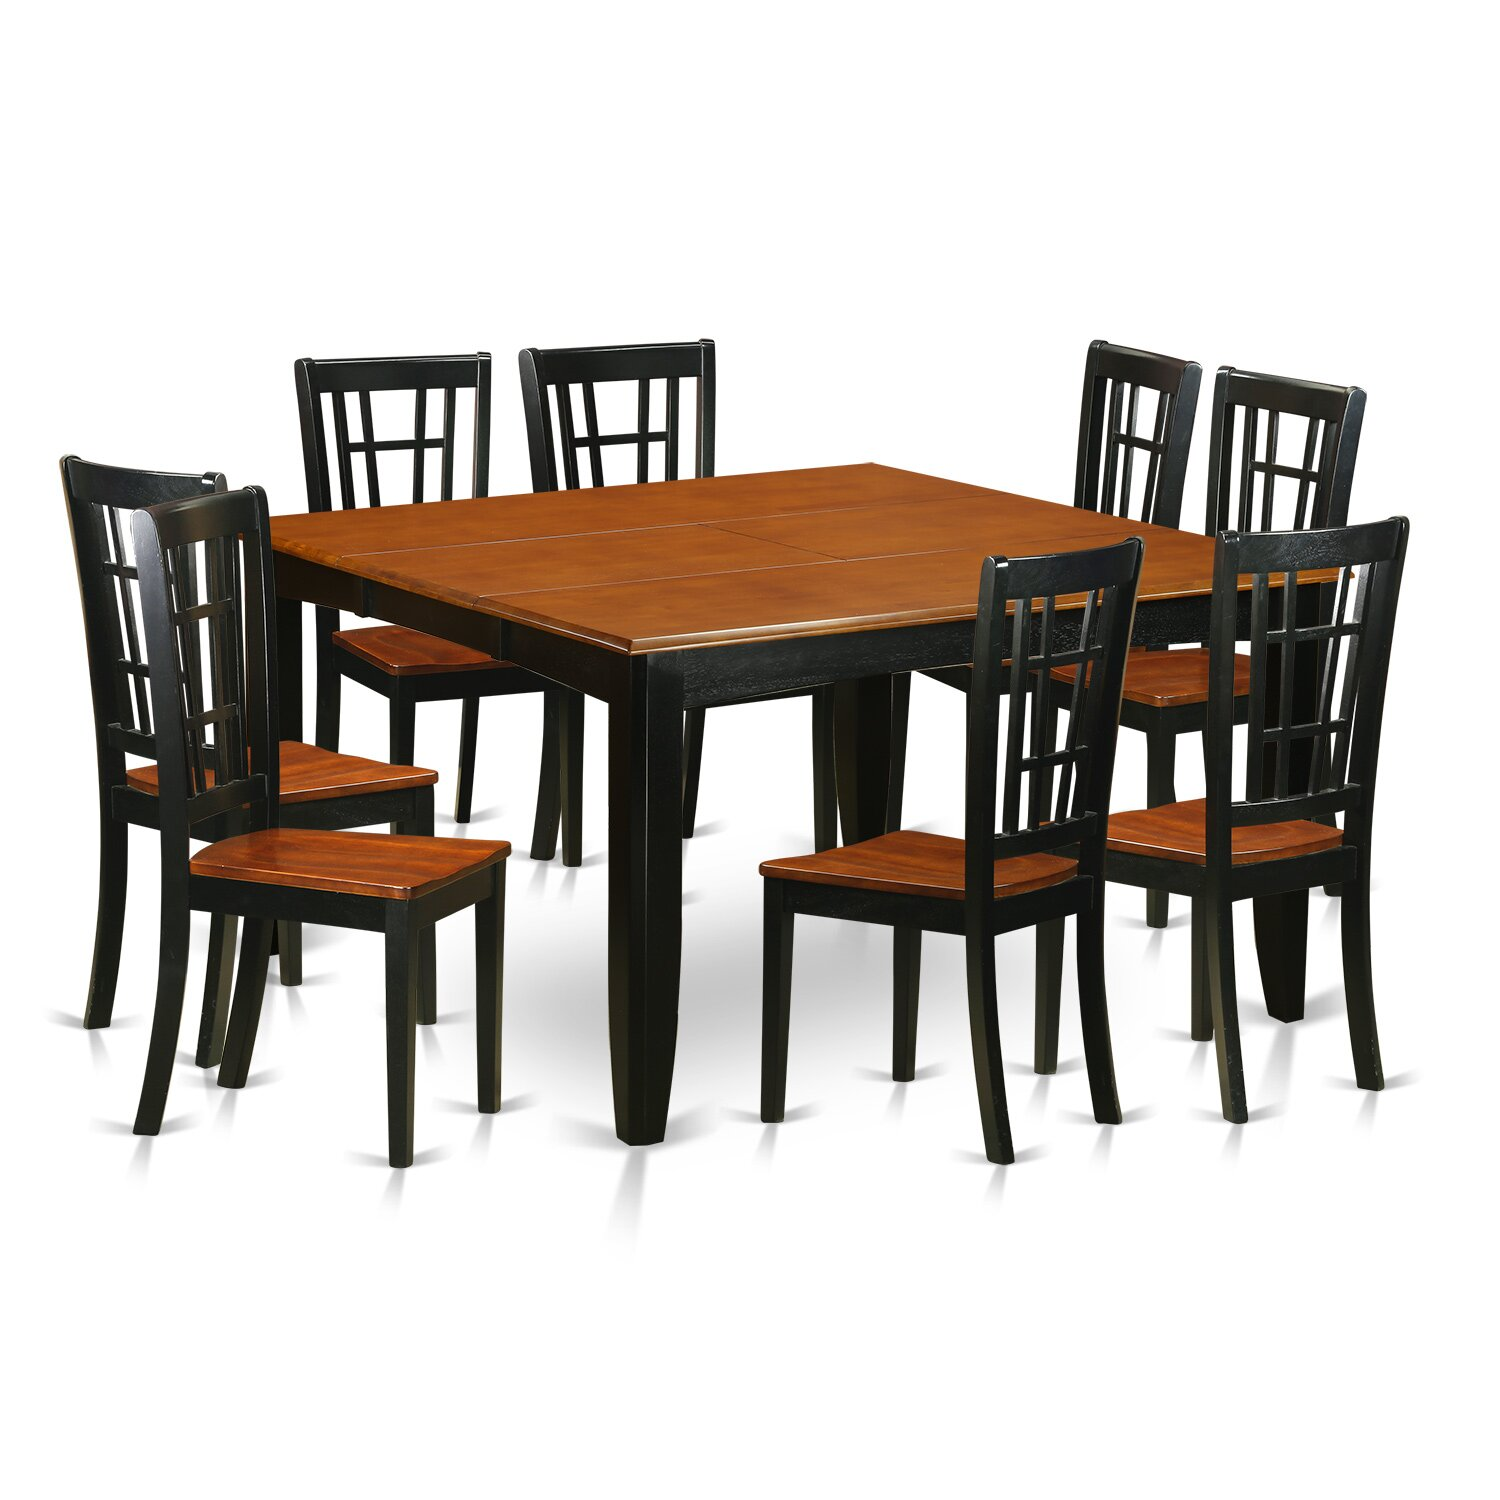 9 Piece Dining Table Set For 8 Dining Room Table With 8: East West Parfait 9 Piece Dining Set